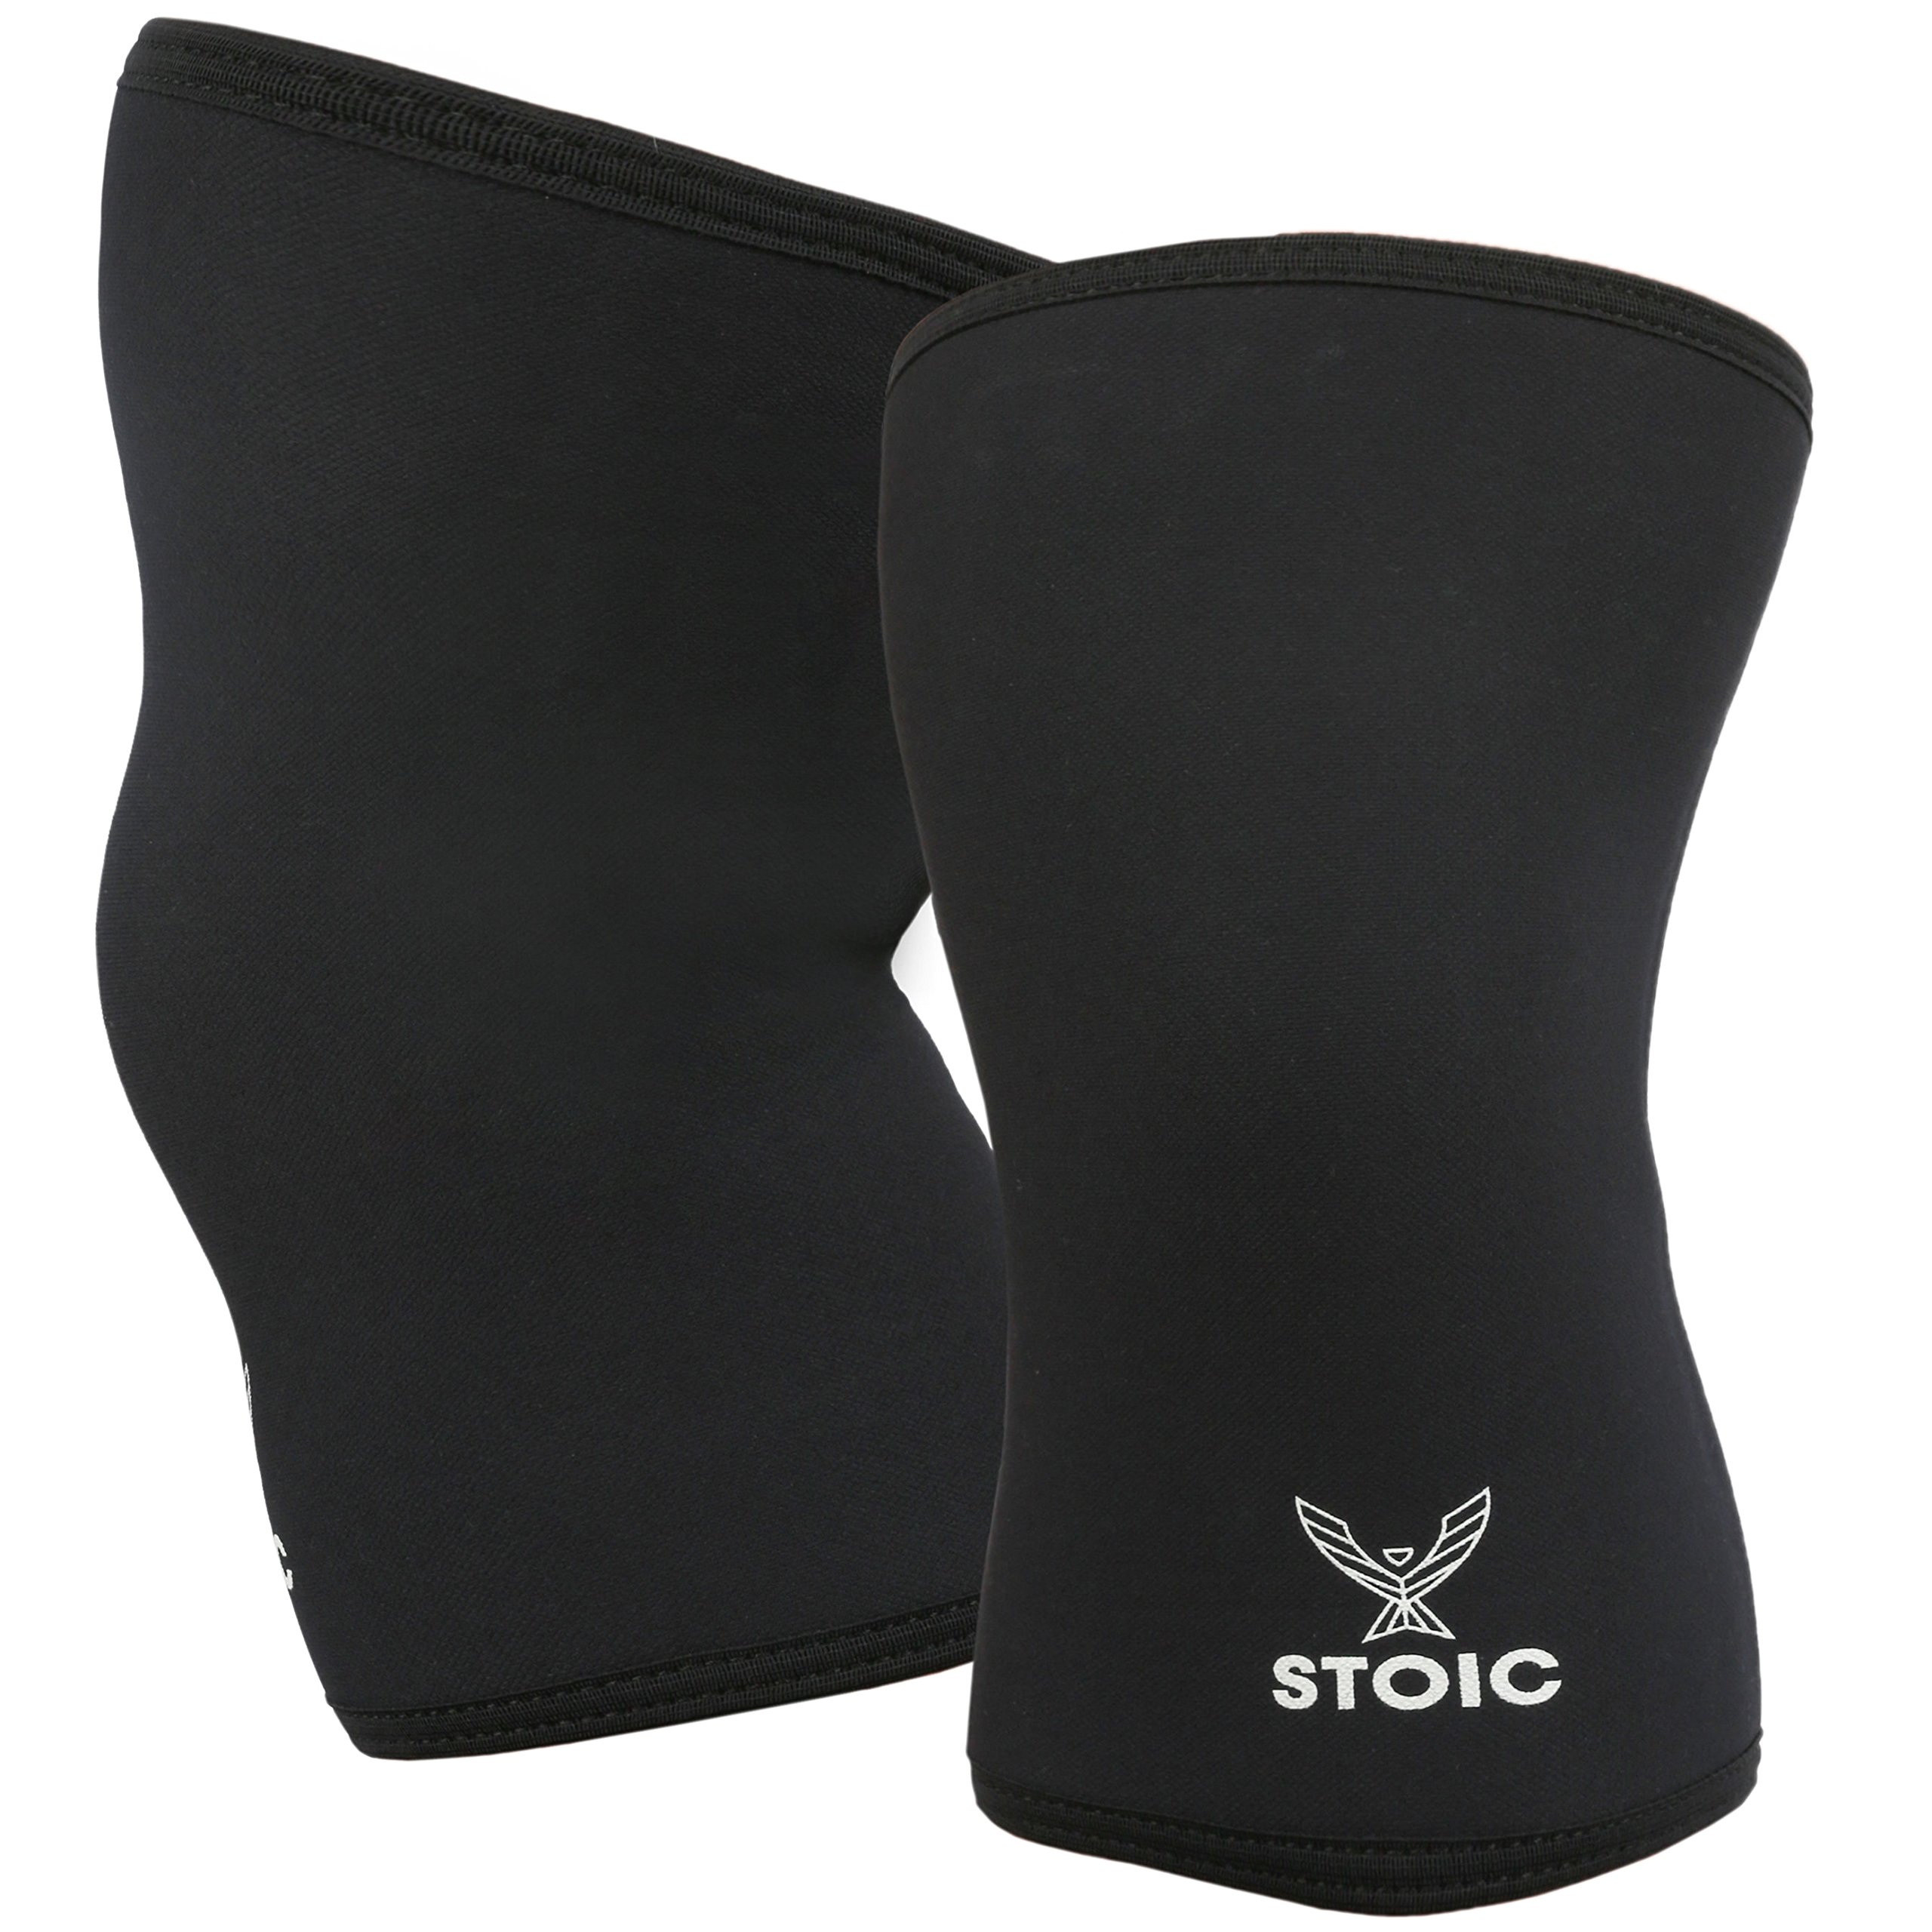 Stoic Knee Sleeves for Powerlifting - 7mm Thick Neoprene Sleeve for Bodybuilding, Weight Lifting Best for Squats, Cross Training, Strongman Professional Quality & Ultra Heavy Duty (Pair) (Large) by Stoic